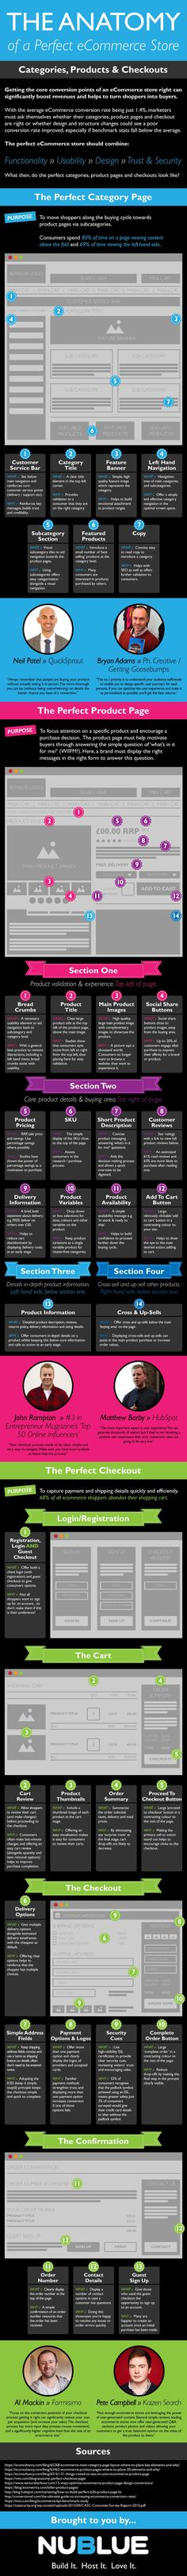 The anatomy of a perfect ecommerce store #INFOGRAPHIC #ECOMMERCE